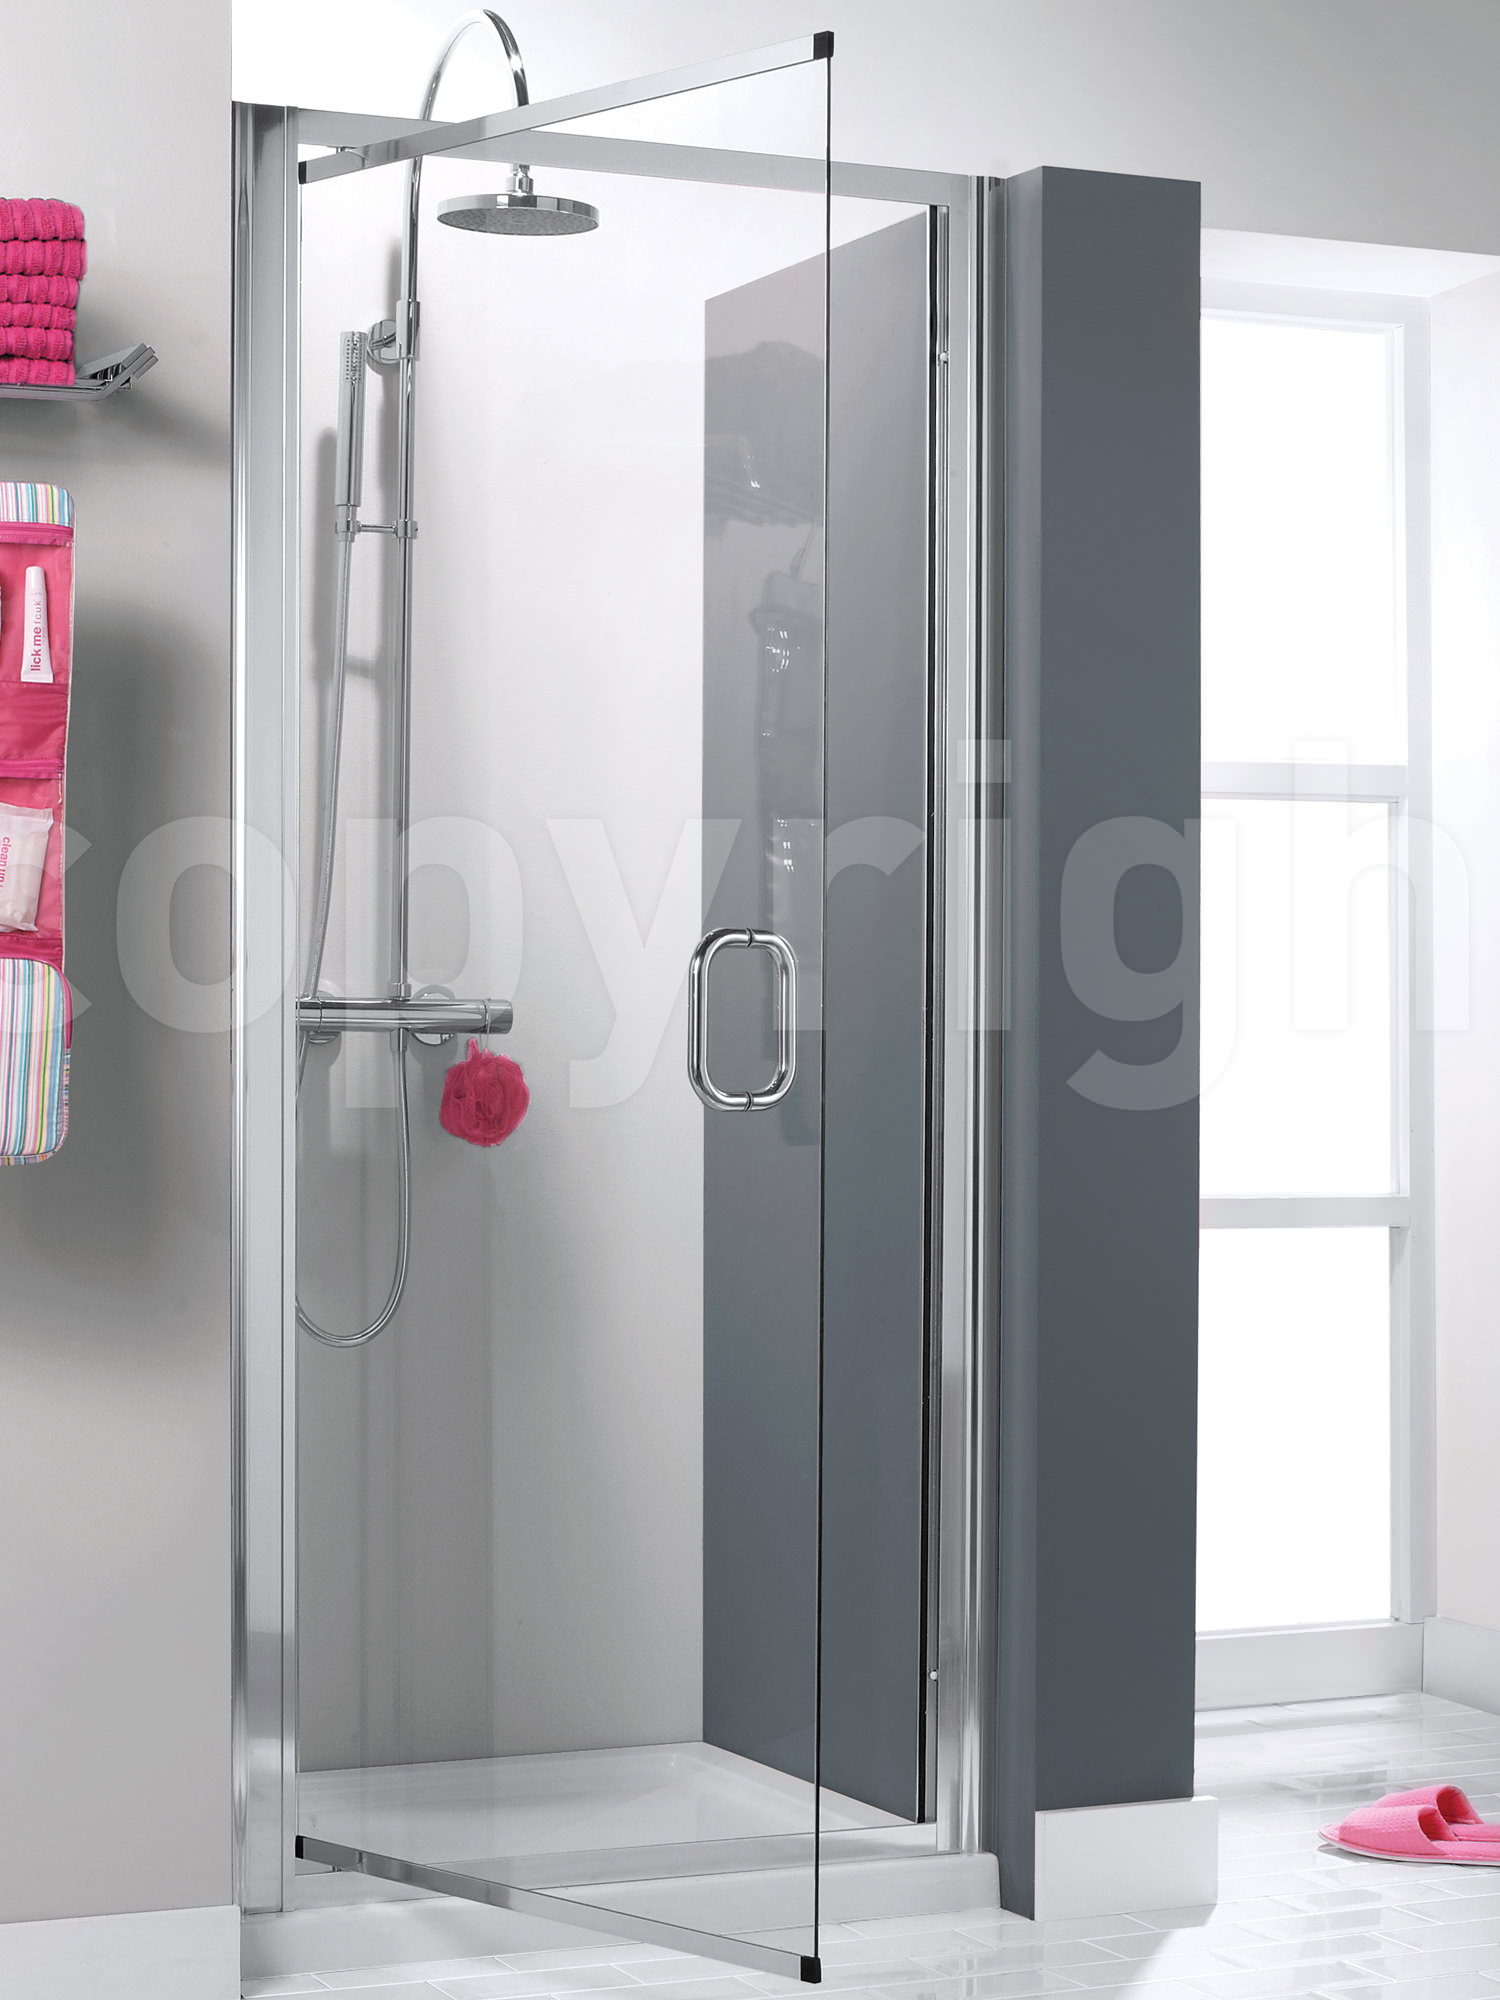 Simpsons Supreme 900mm Luxury Pivot Shower Door